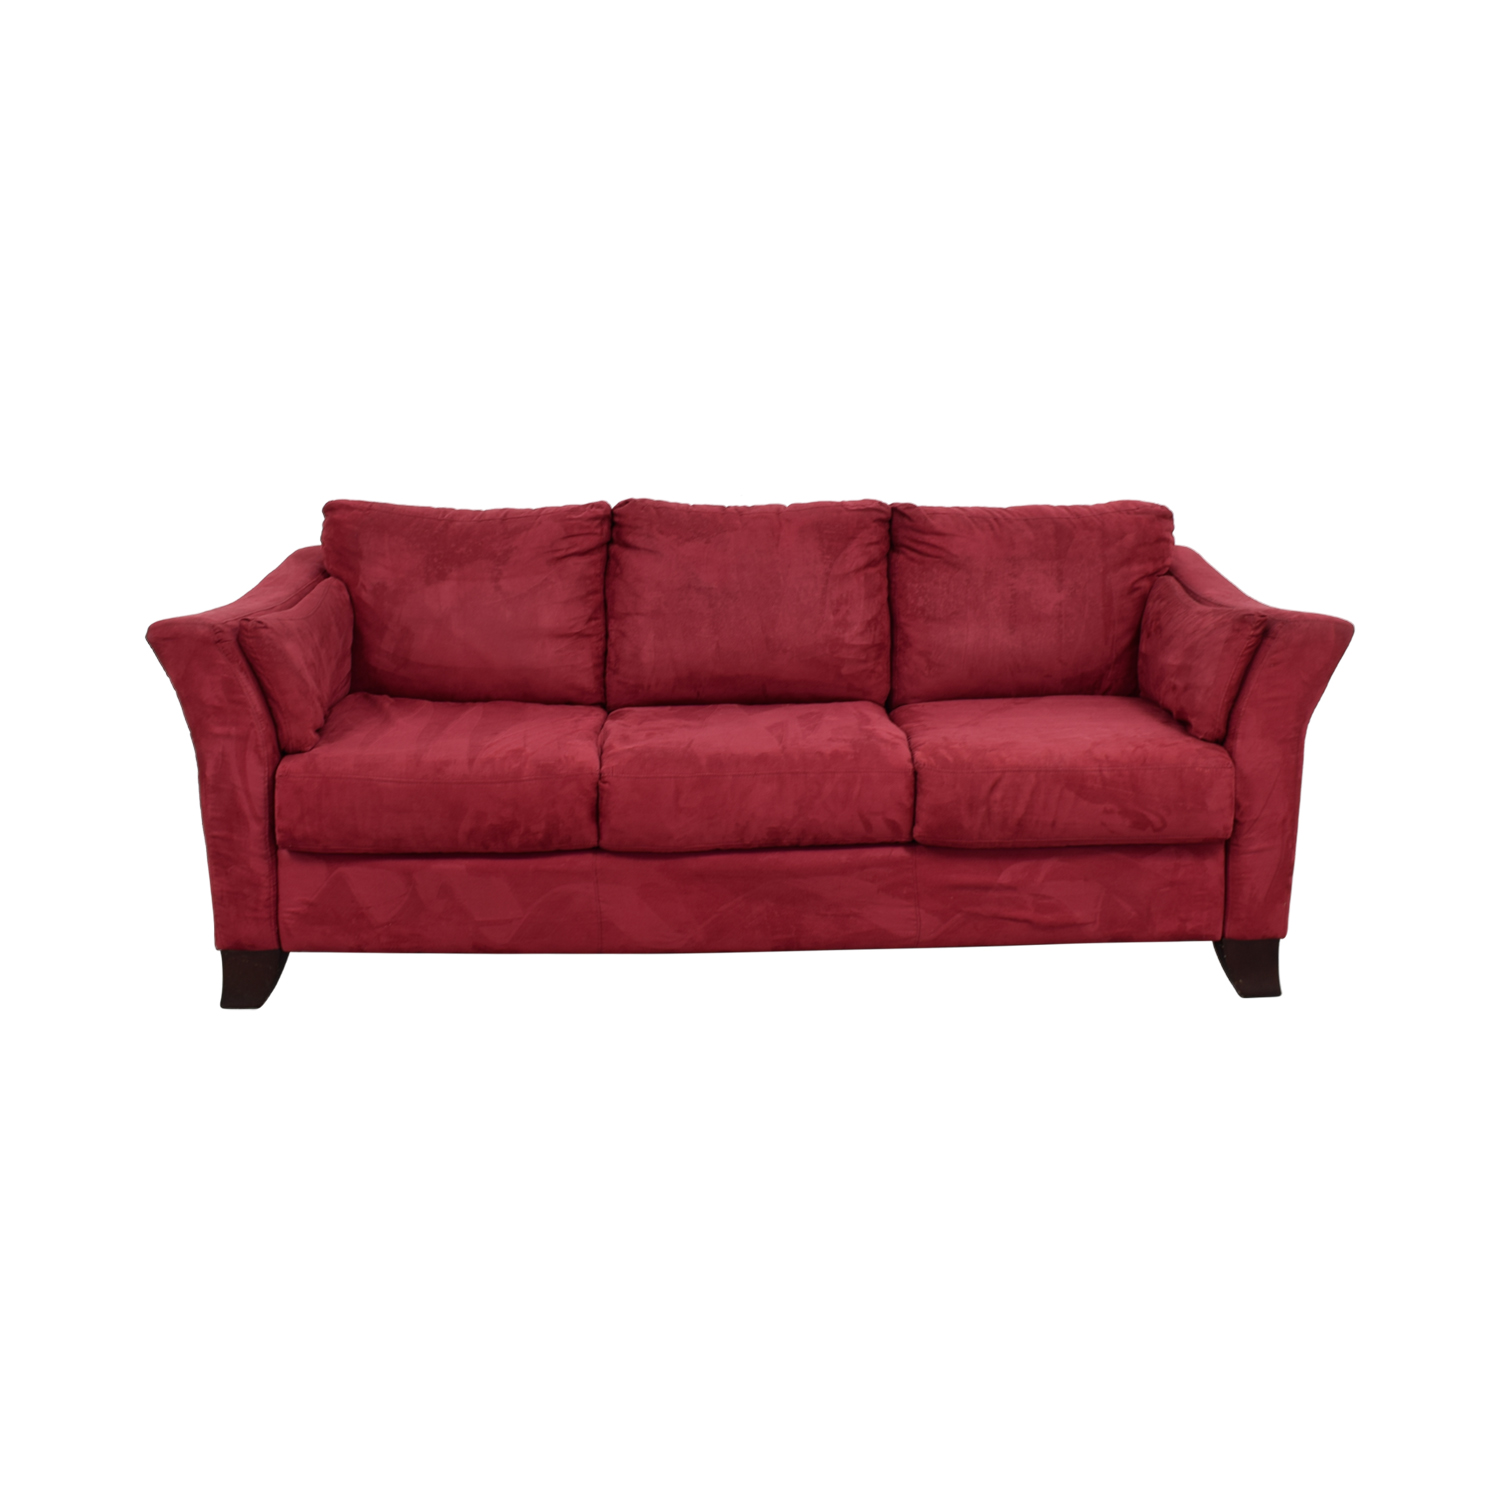 buy Jennifer Convertable Microfiber Red Three-Cushion Couch Jennifer Convertable